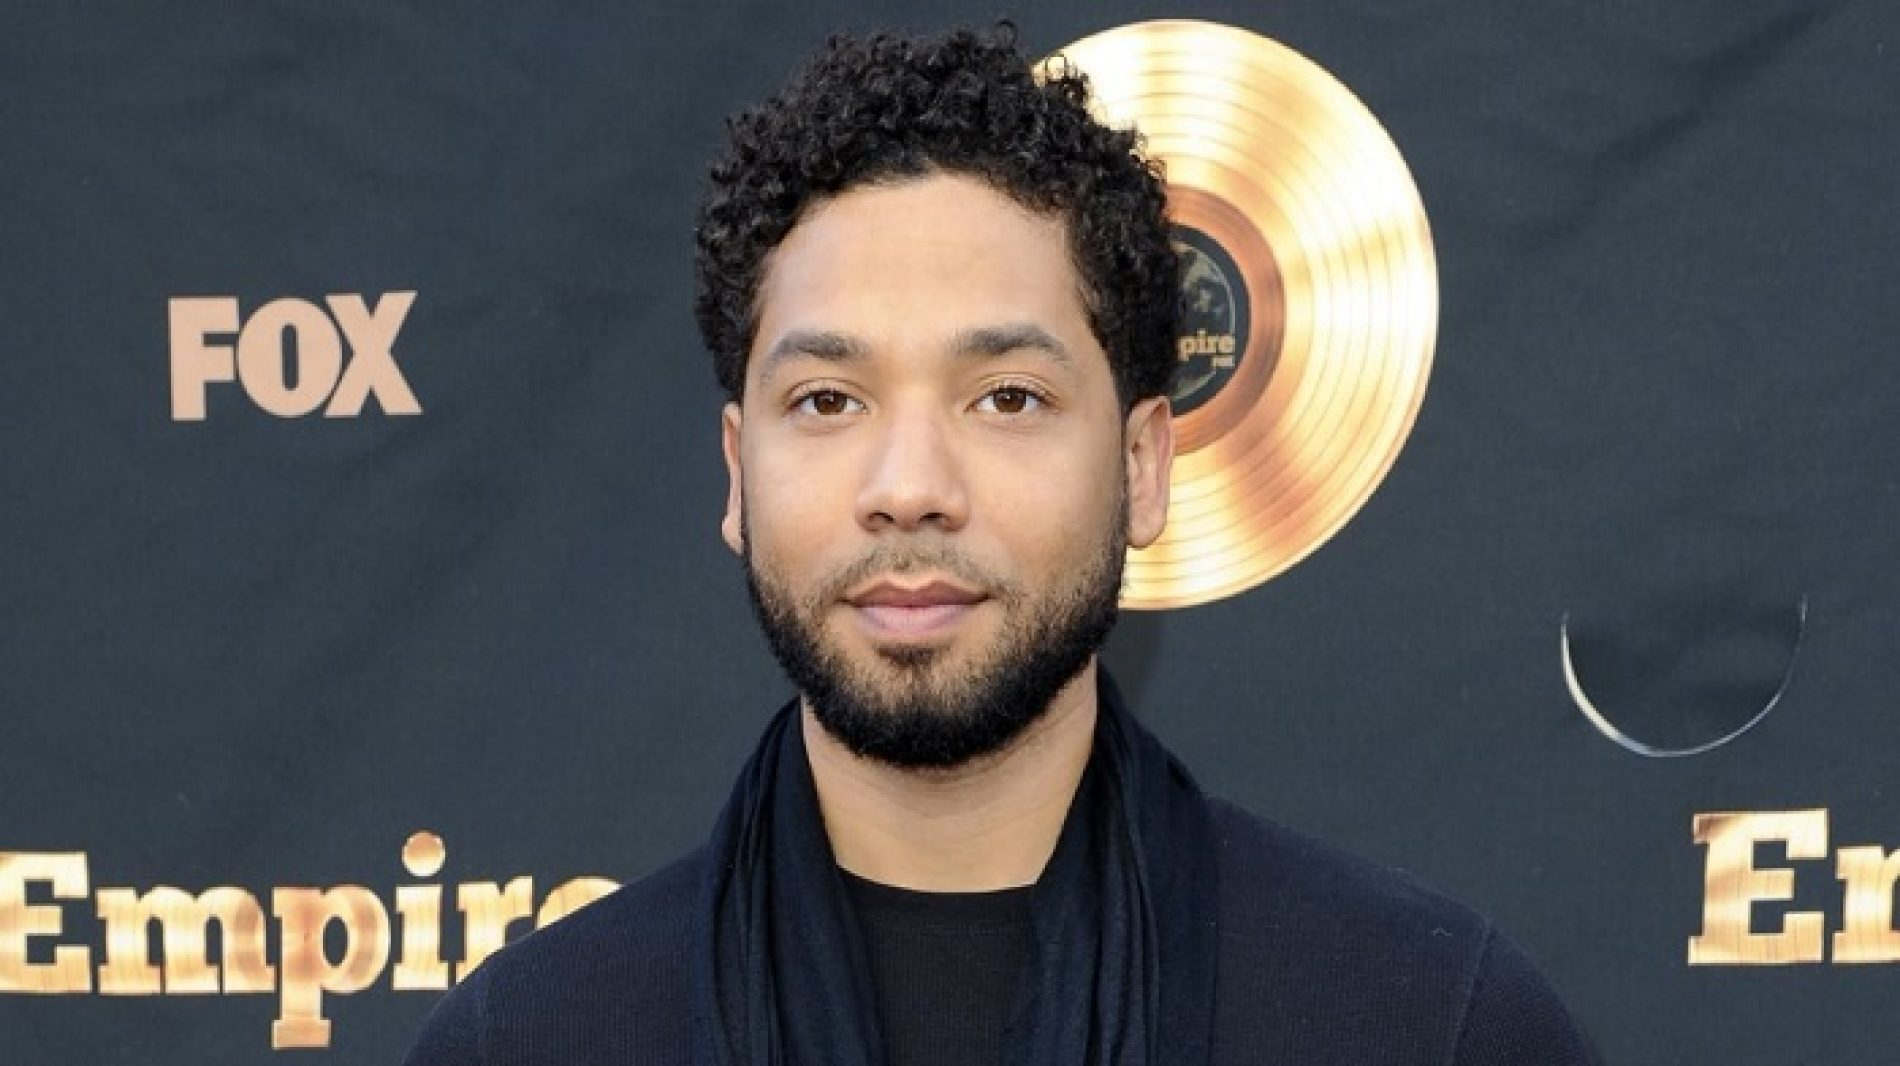 Actor Jussie Smollett Becomes A Victim Of Homophobic Attack By MAGA Supporters